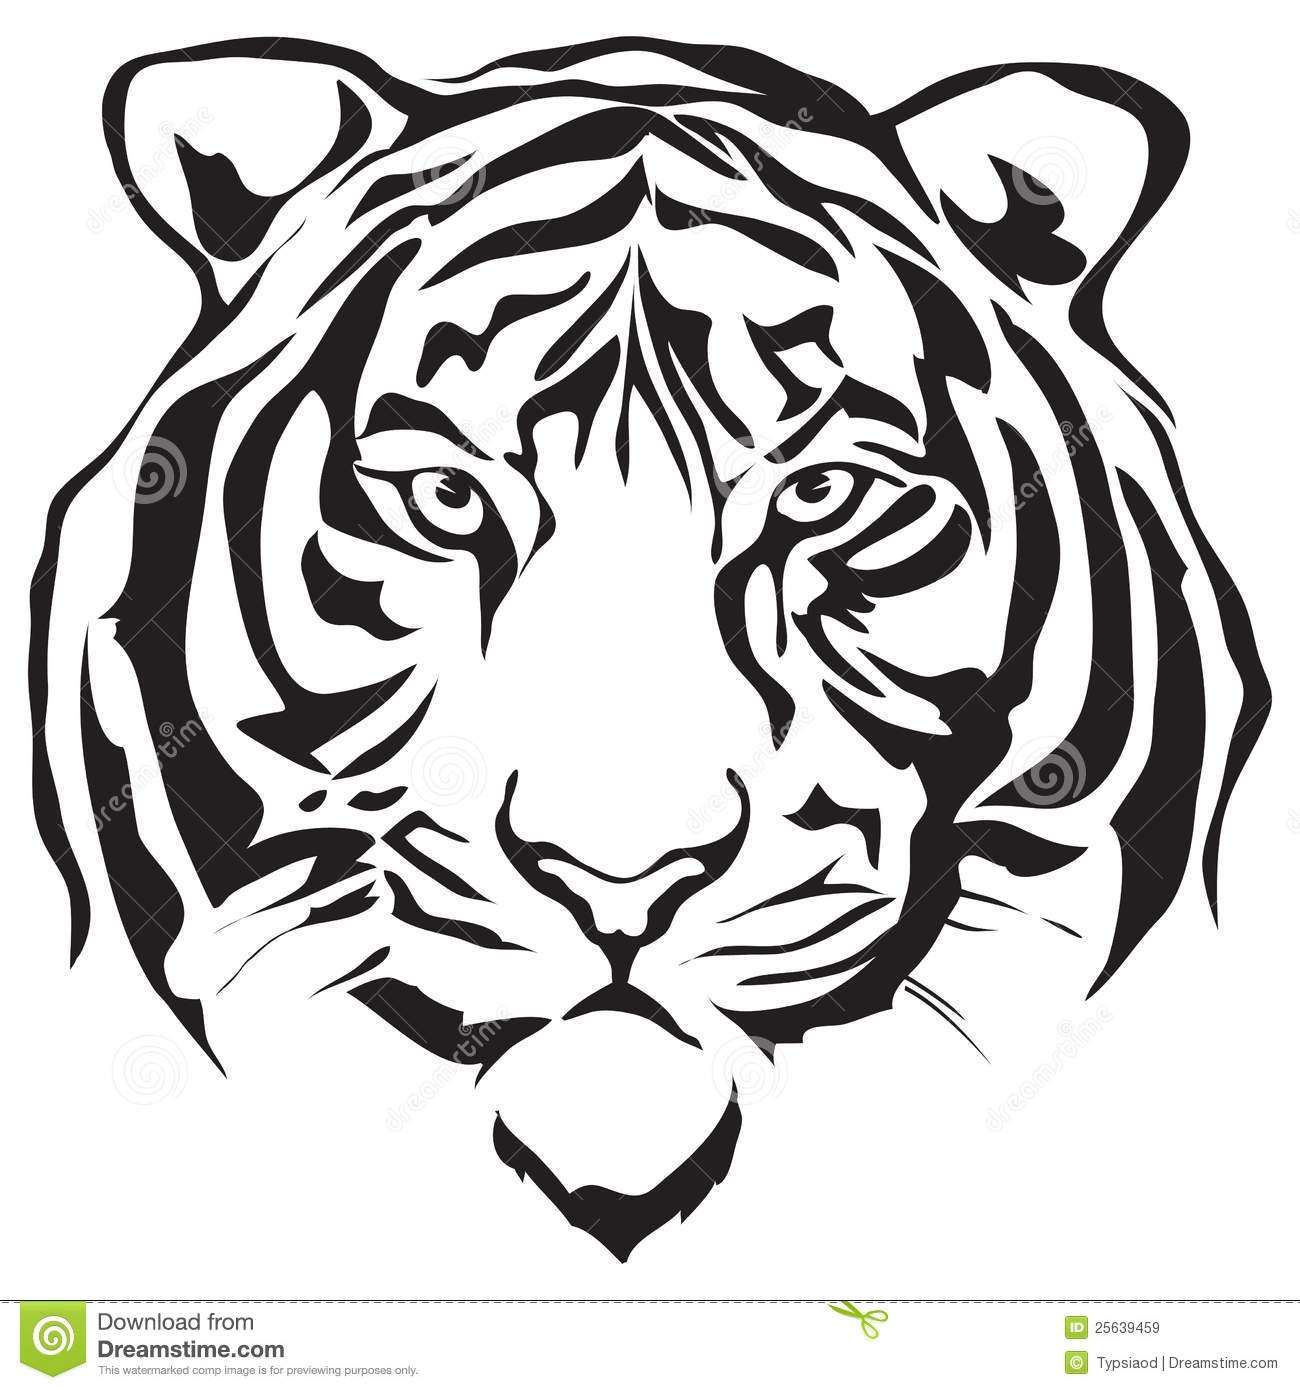 Free tiger clipart black and white image freeuse library 9+ Tiger Clipart Black And White | ClipartLook image freeuse library